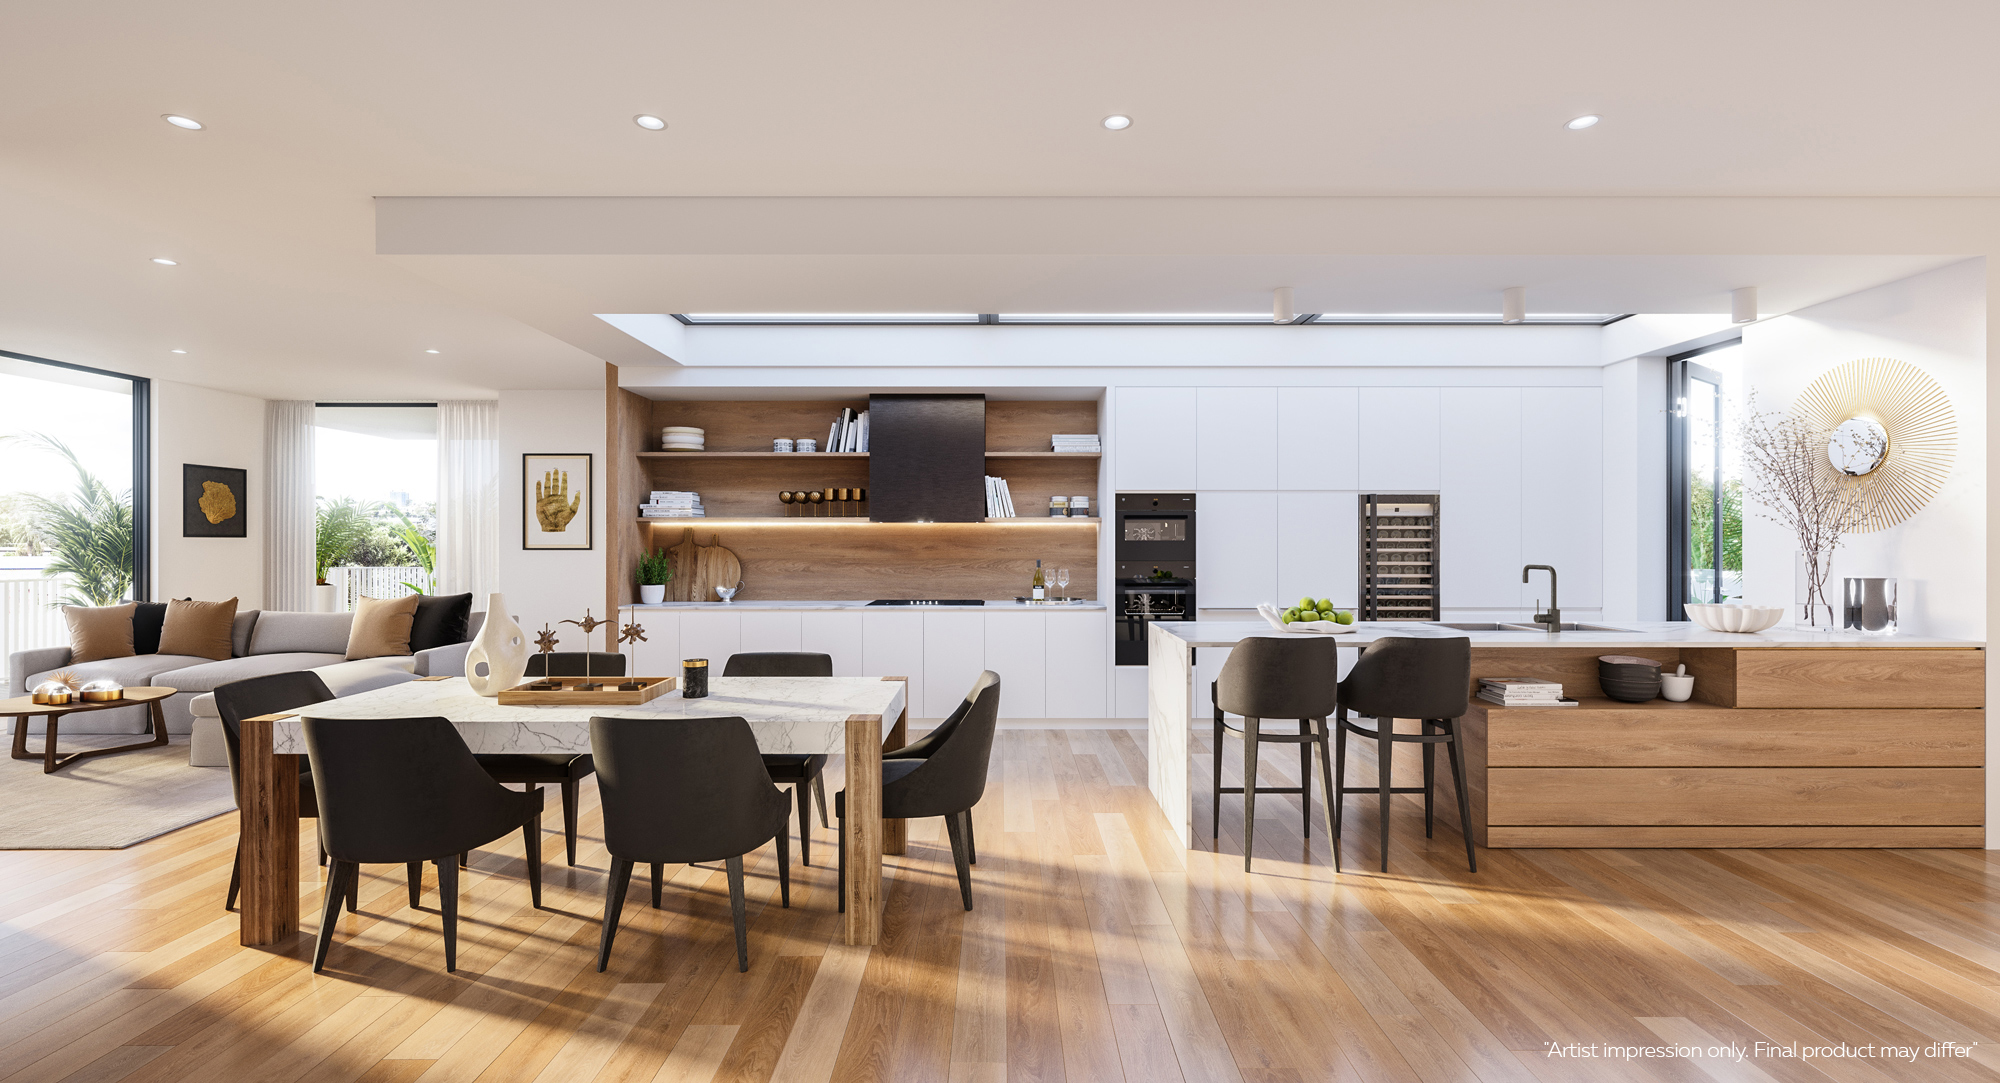 WEB_Unit_11_Living_Dining_Kitchen_11-15_Dorset_St_3d_Render_by_Volume_Vision.jpg